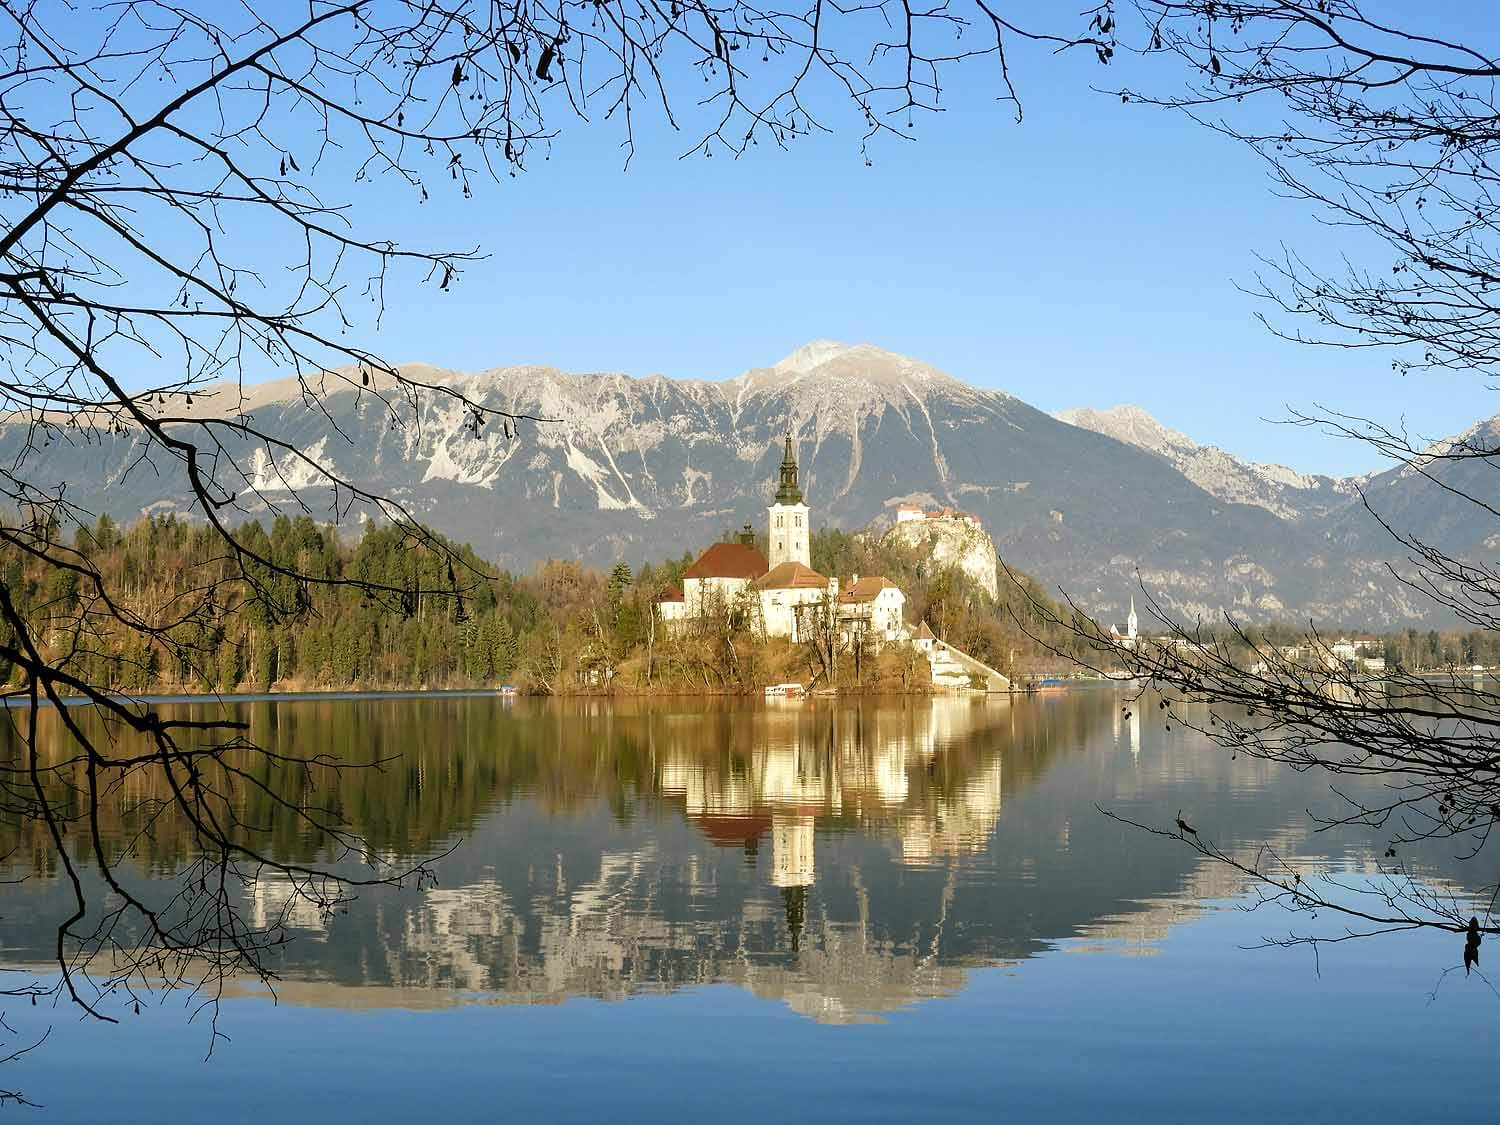 slovenia-lake-bled-pilgrimage-church-assumption-maria-island.jpg